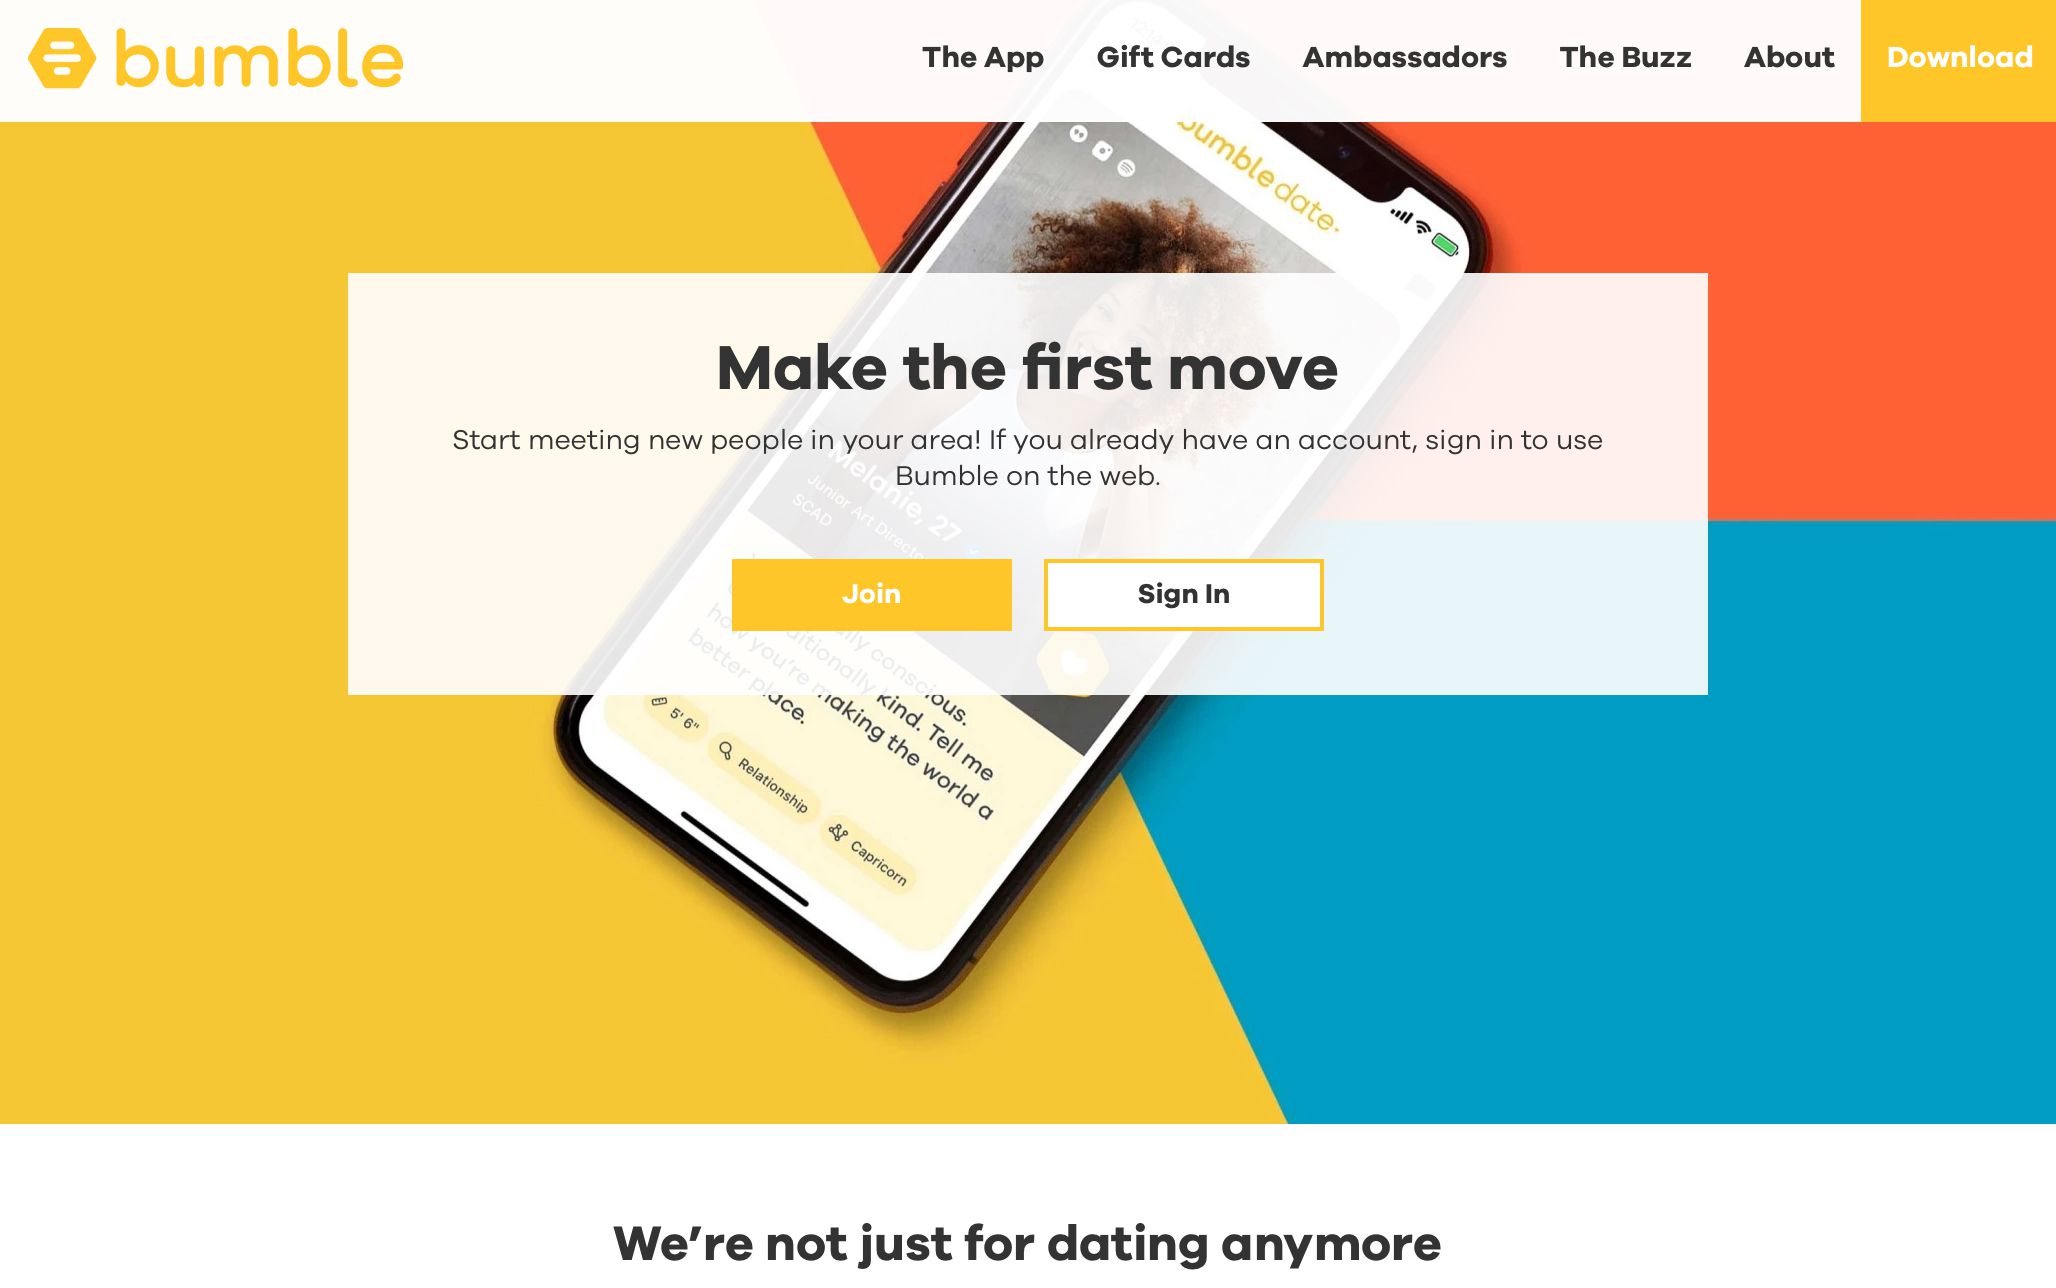 Bumble Join or Sign In screen